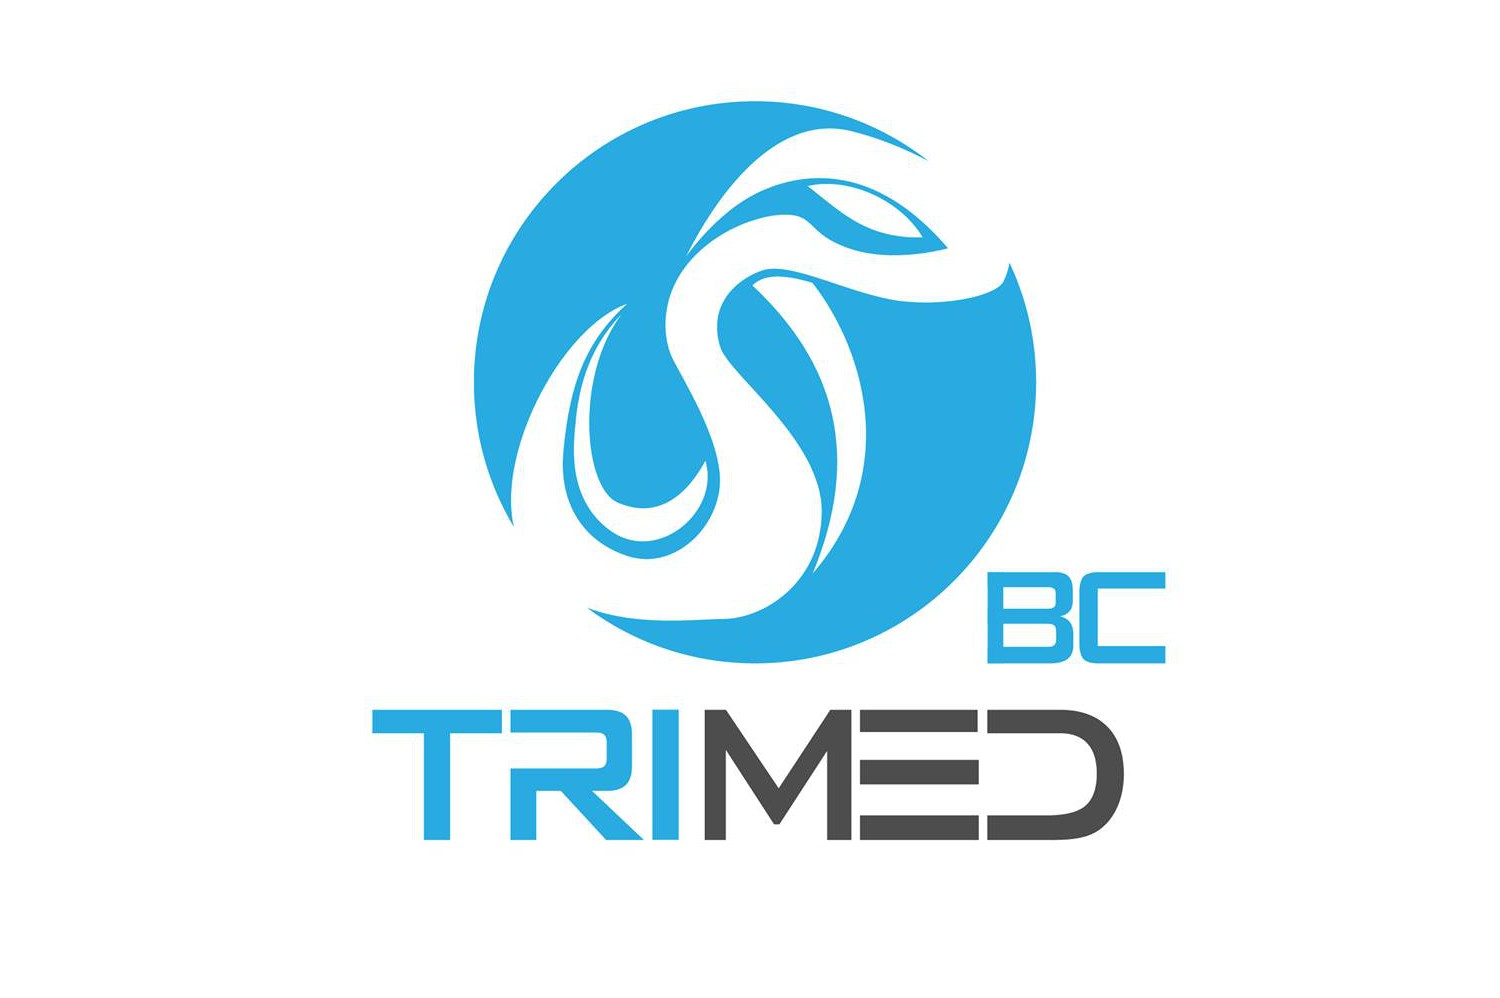 bctrimed